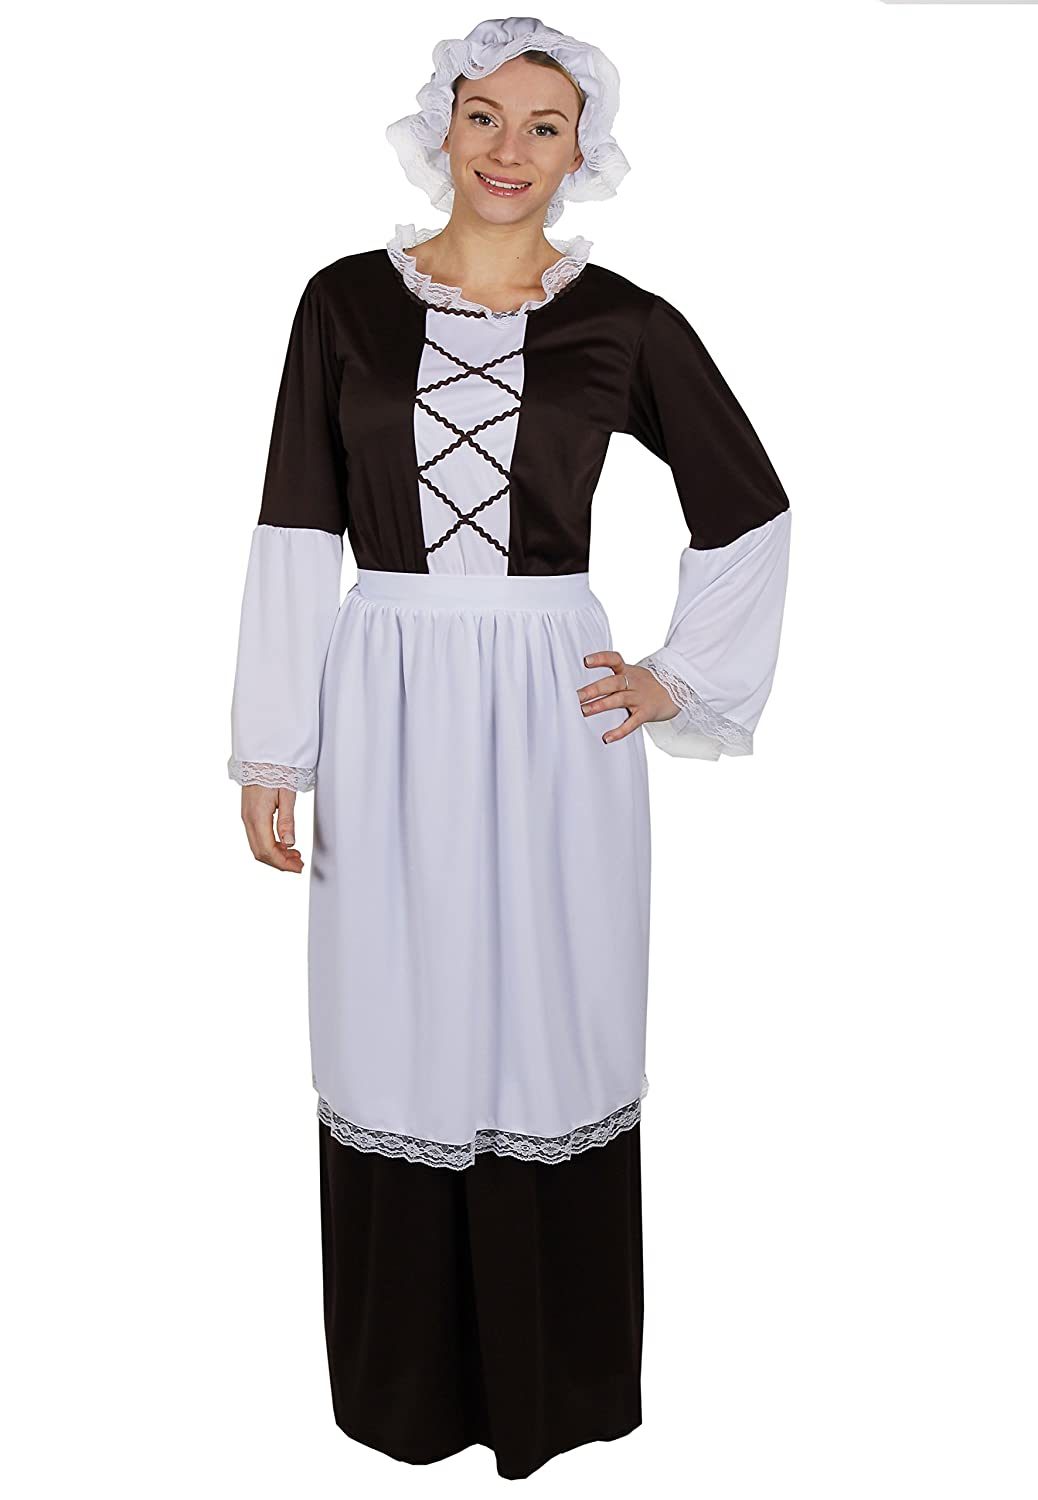 White apron fancy dress - Ladies Tudor Maid Costume Including Brown Long Dress With White Detailing On Sleeve White Apron